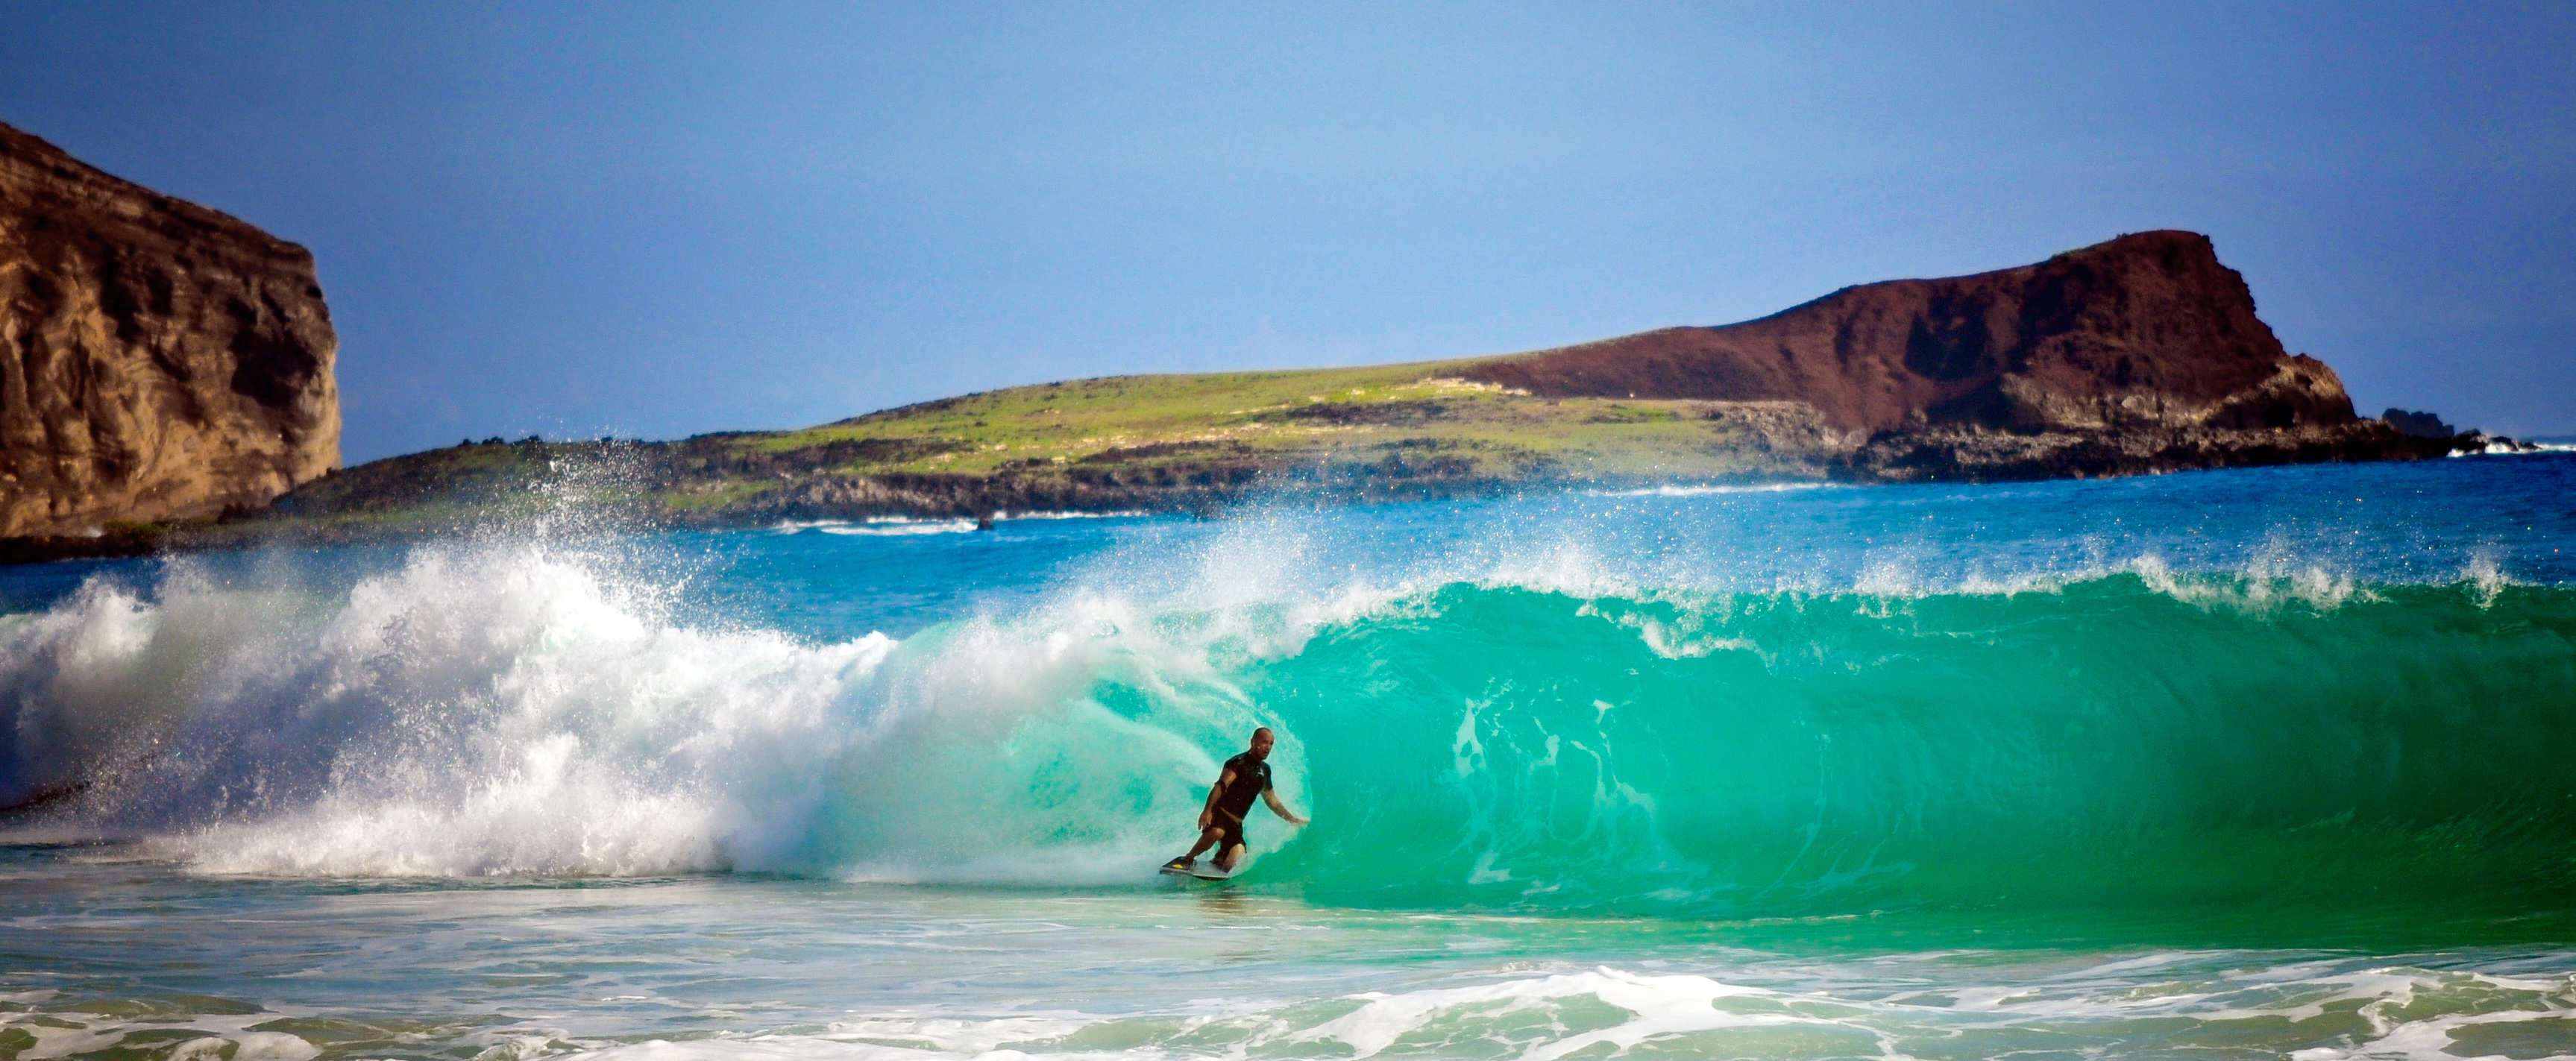 Kellogg's Hawaii Bodyboarding Pro Tour DropKnee Specialty Event Running Tomorrow at Makapu'u ...